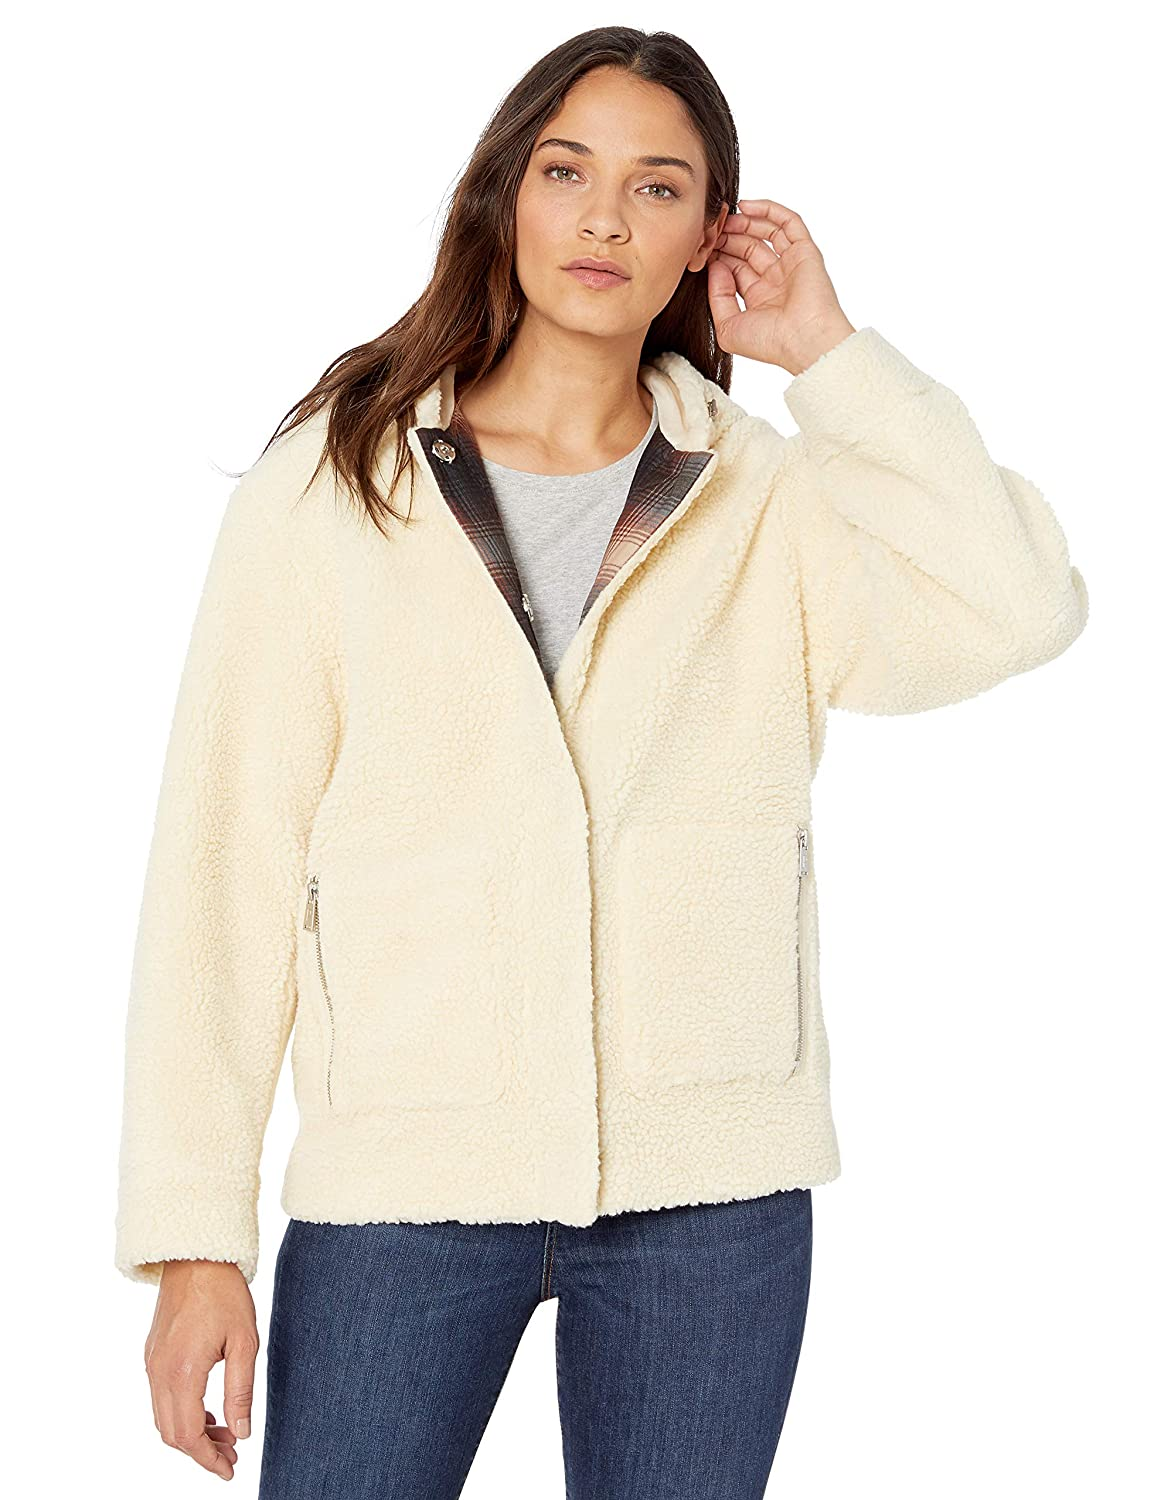 Pendleton Womens Berber Fleece Hooded Jacket